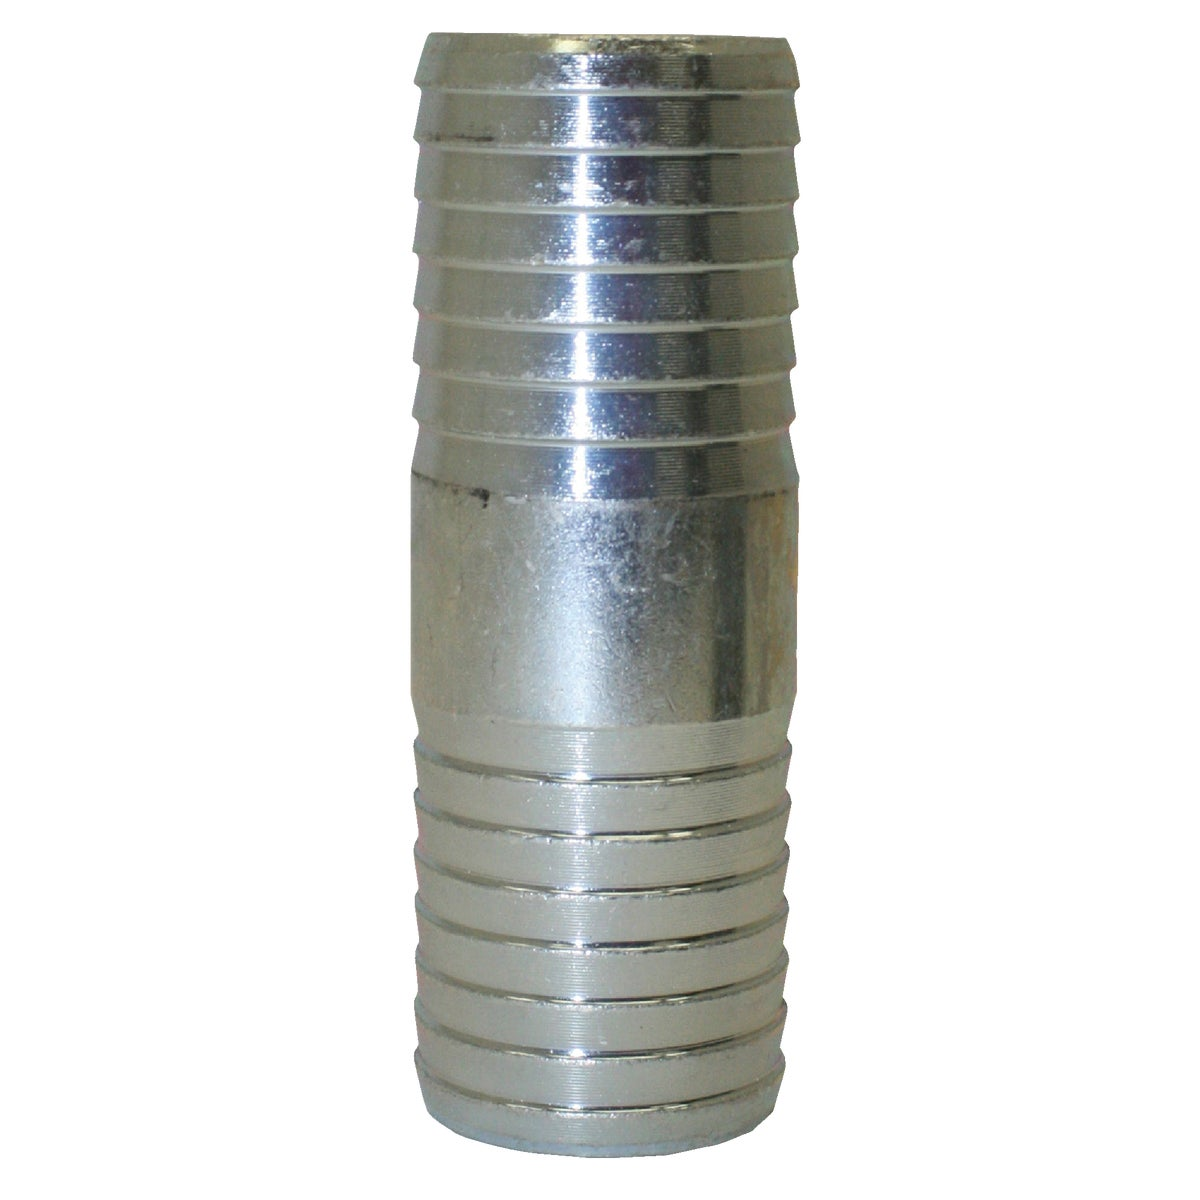 "1-1/2"" INSERT COUPLING - SCP150 by Merrill Mfg"